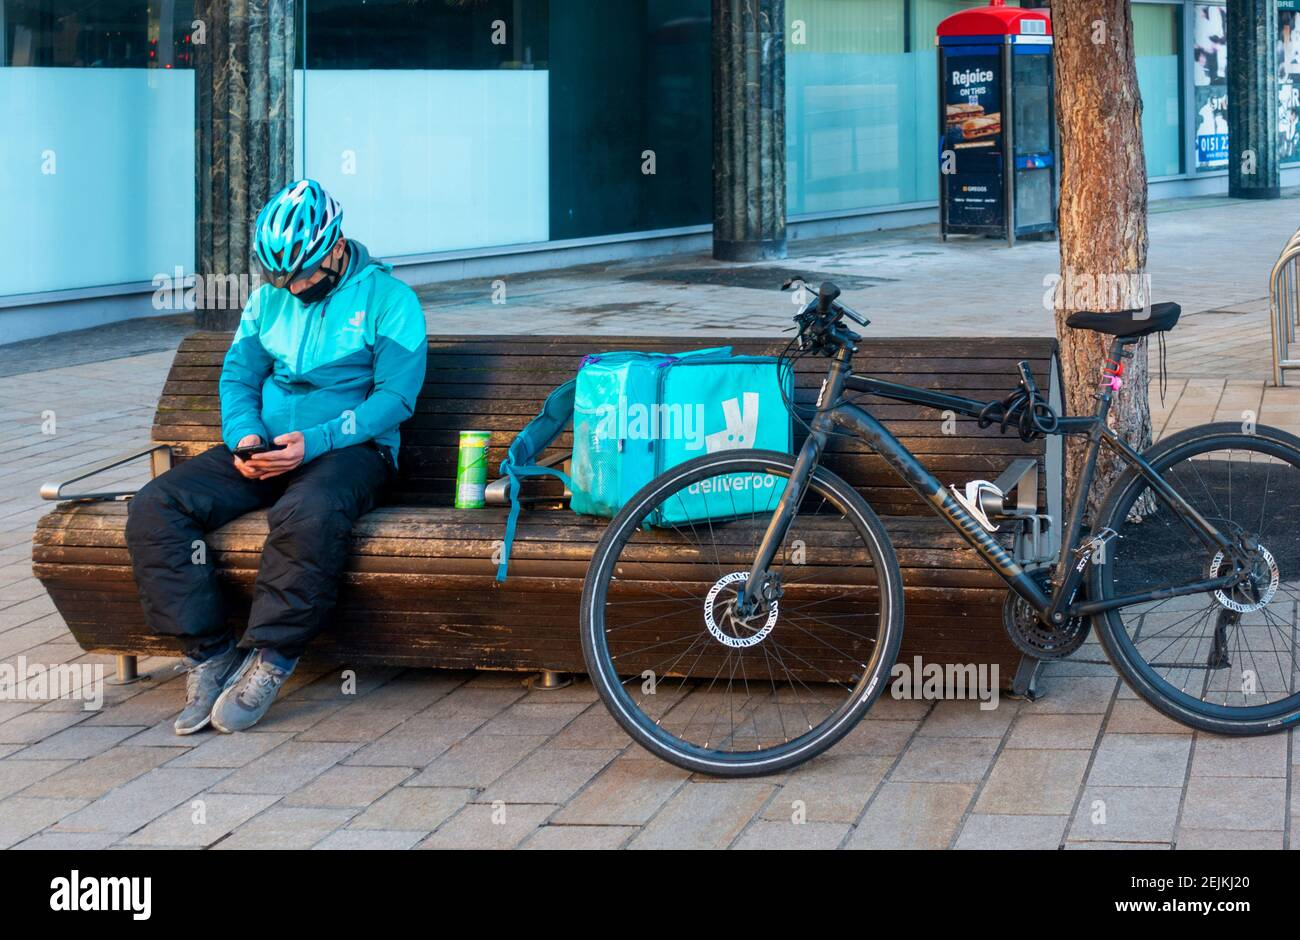 deliveroo-bike-delivery-man-checking-his